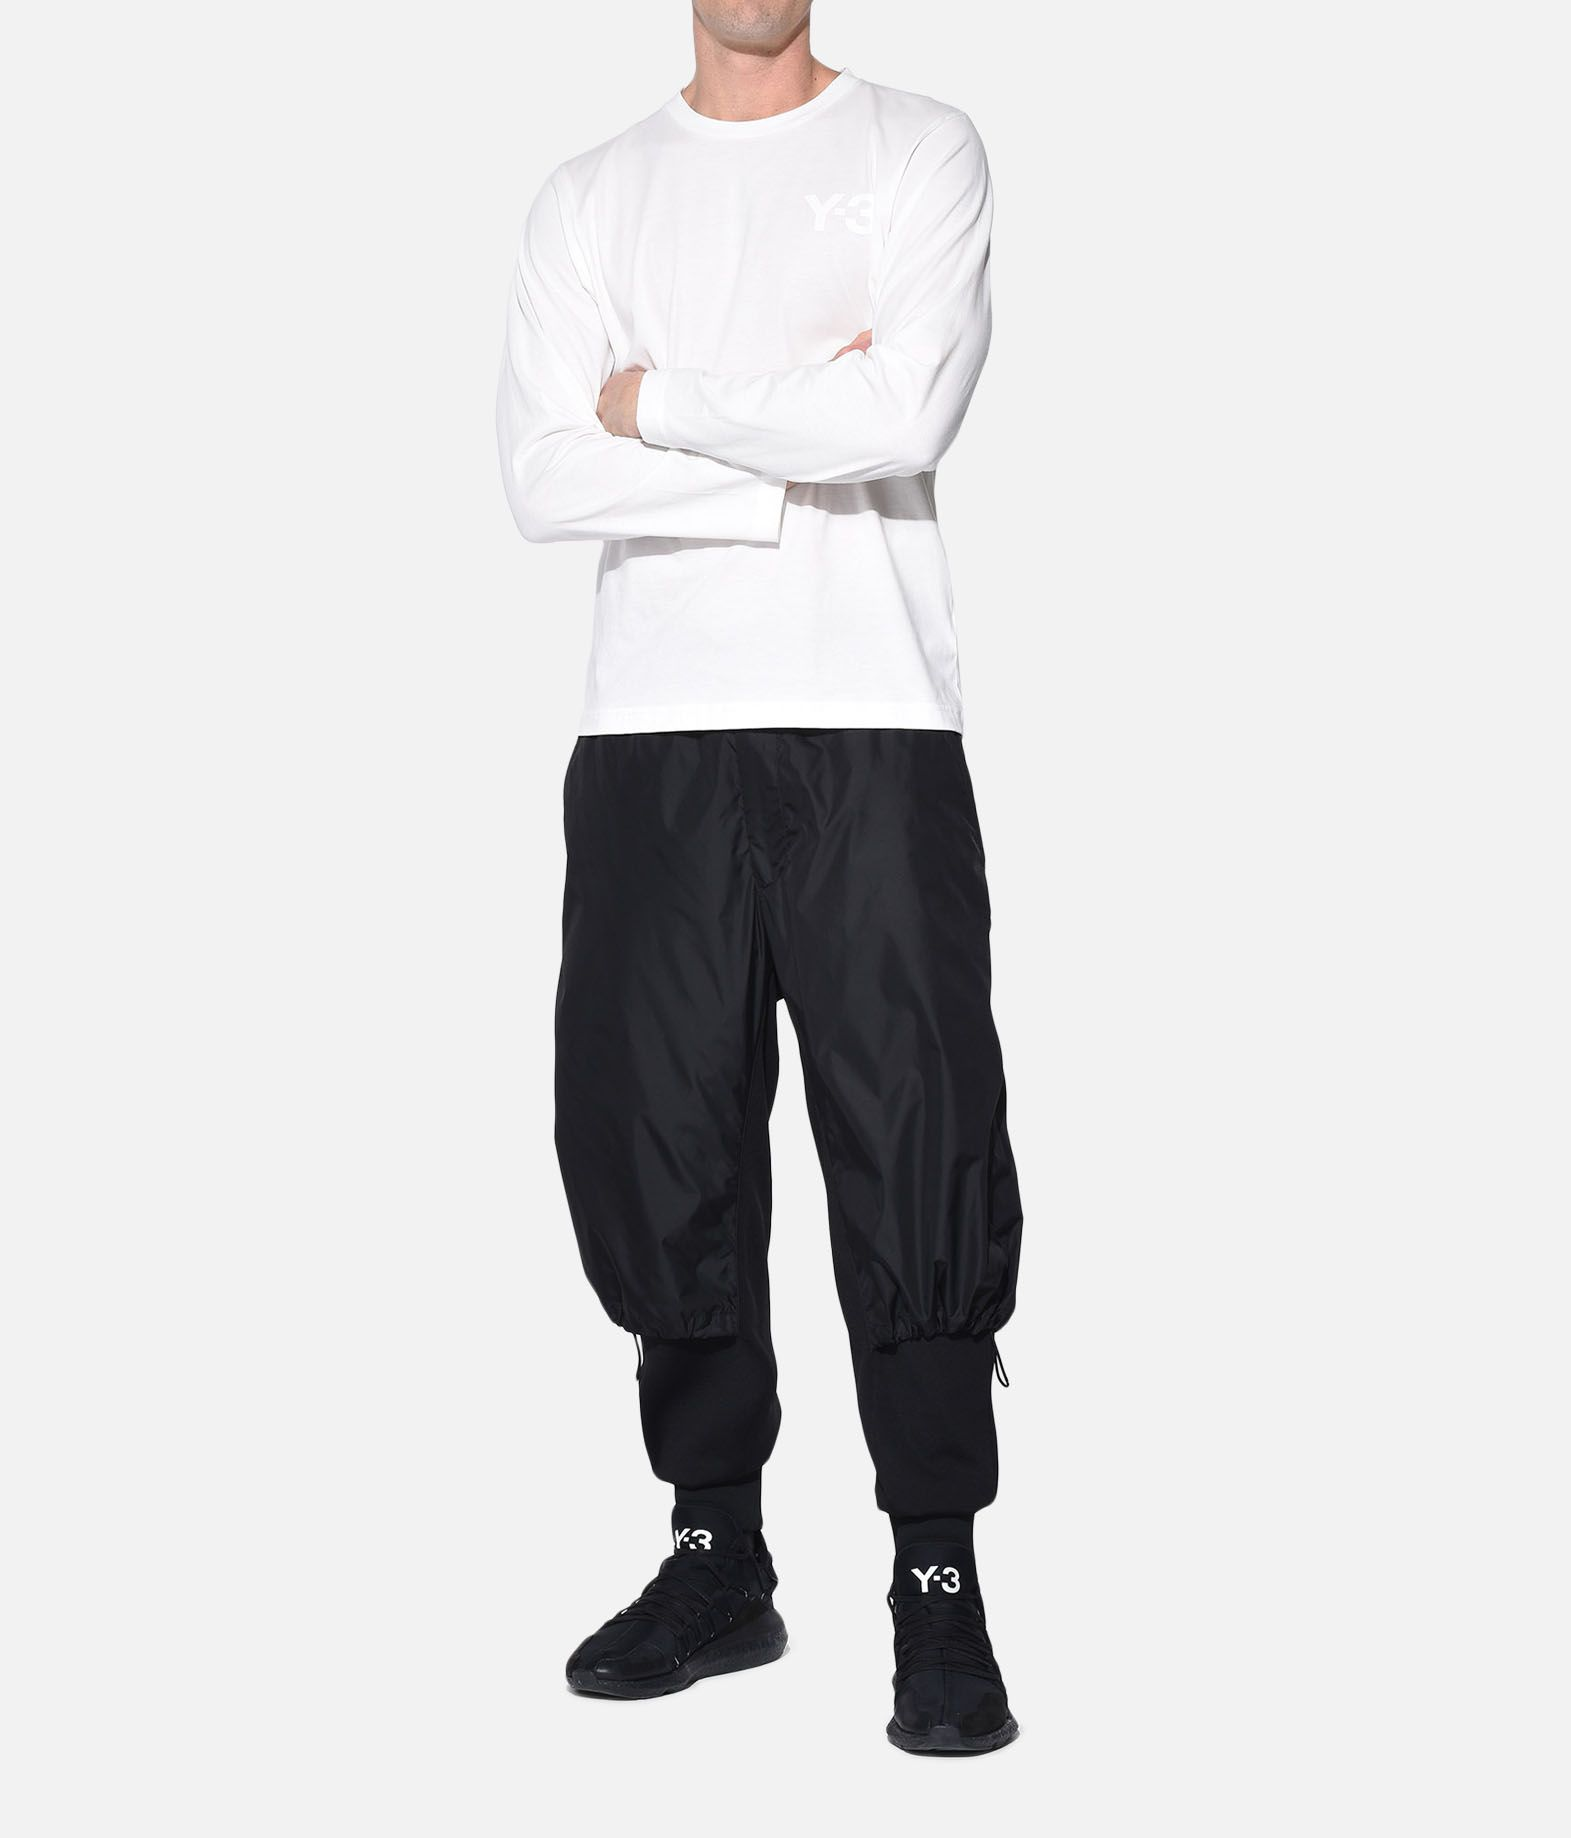 Y-3 Y-3 Classic Tee Long sleeve t-shirt Man a